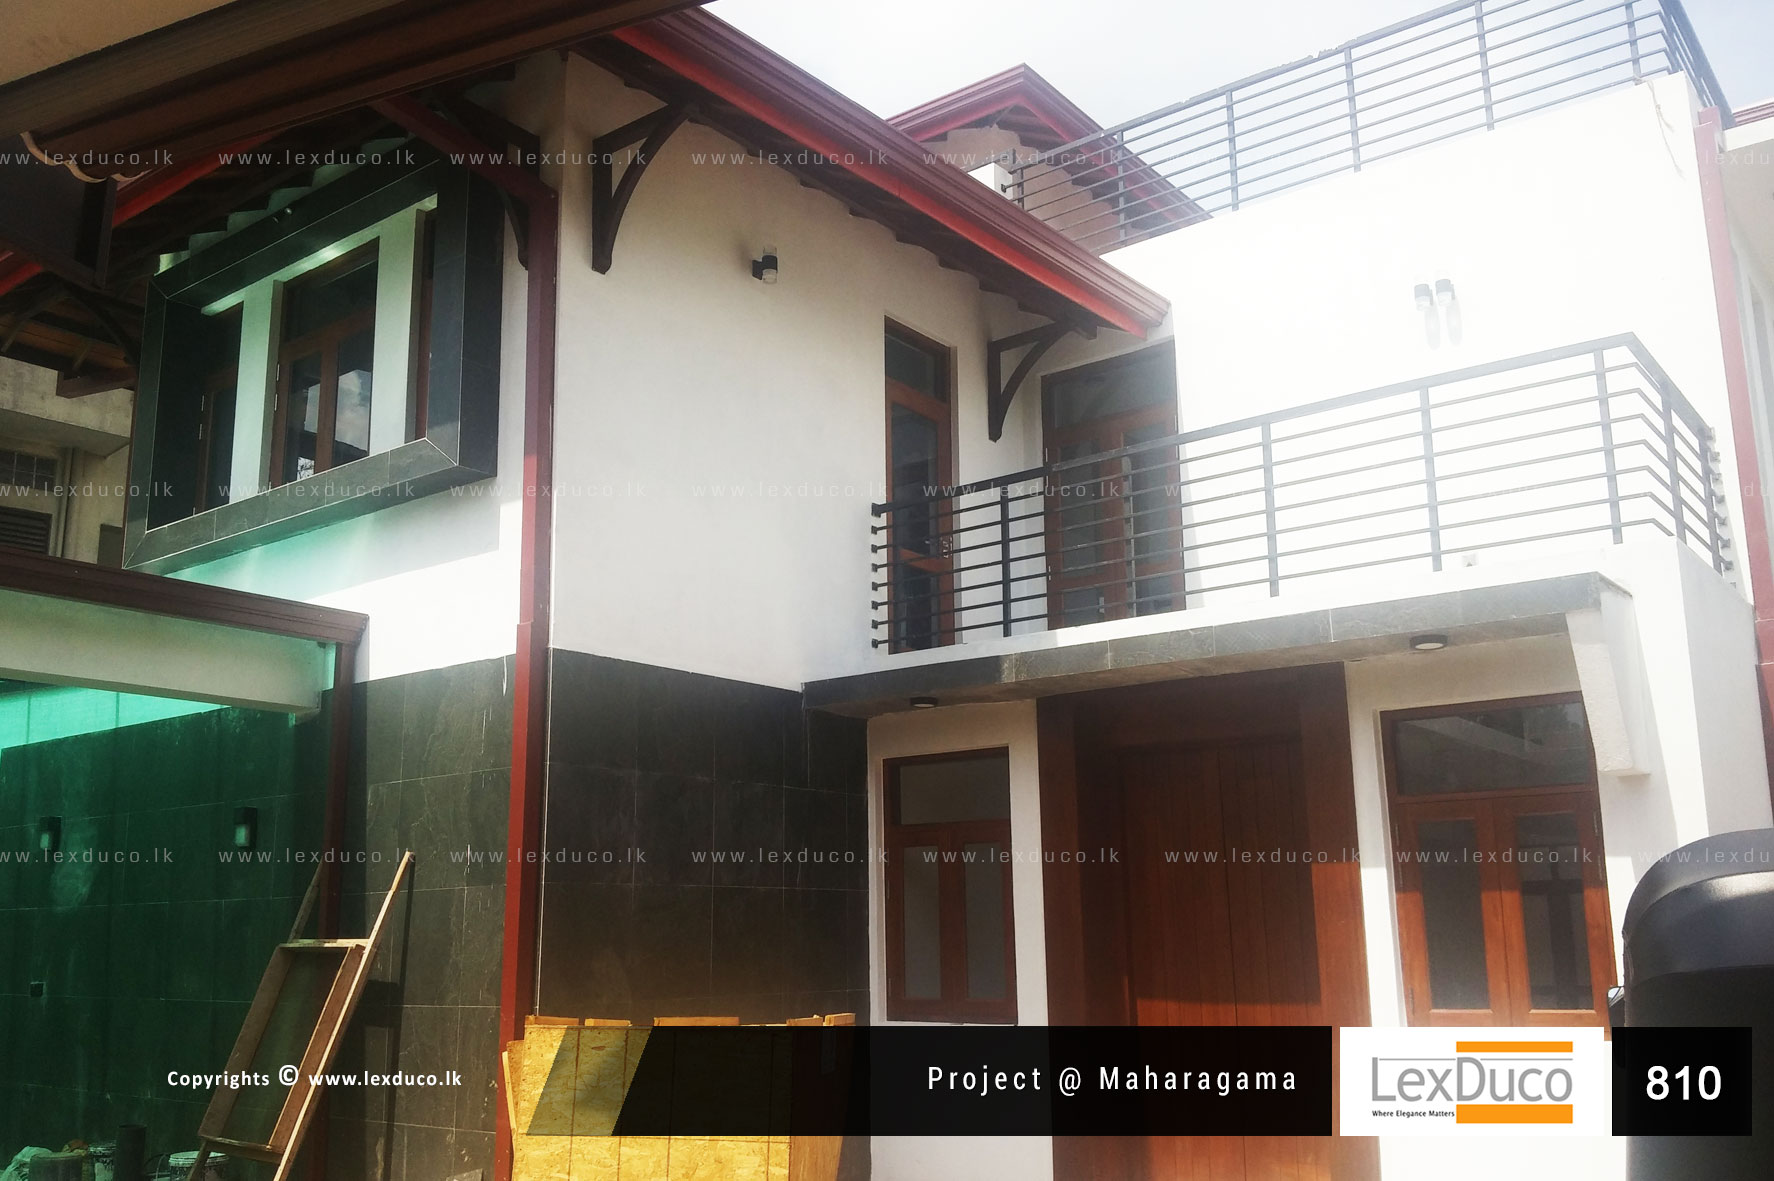 Residential Housing Project at Maharagama | Lex Duco